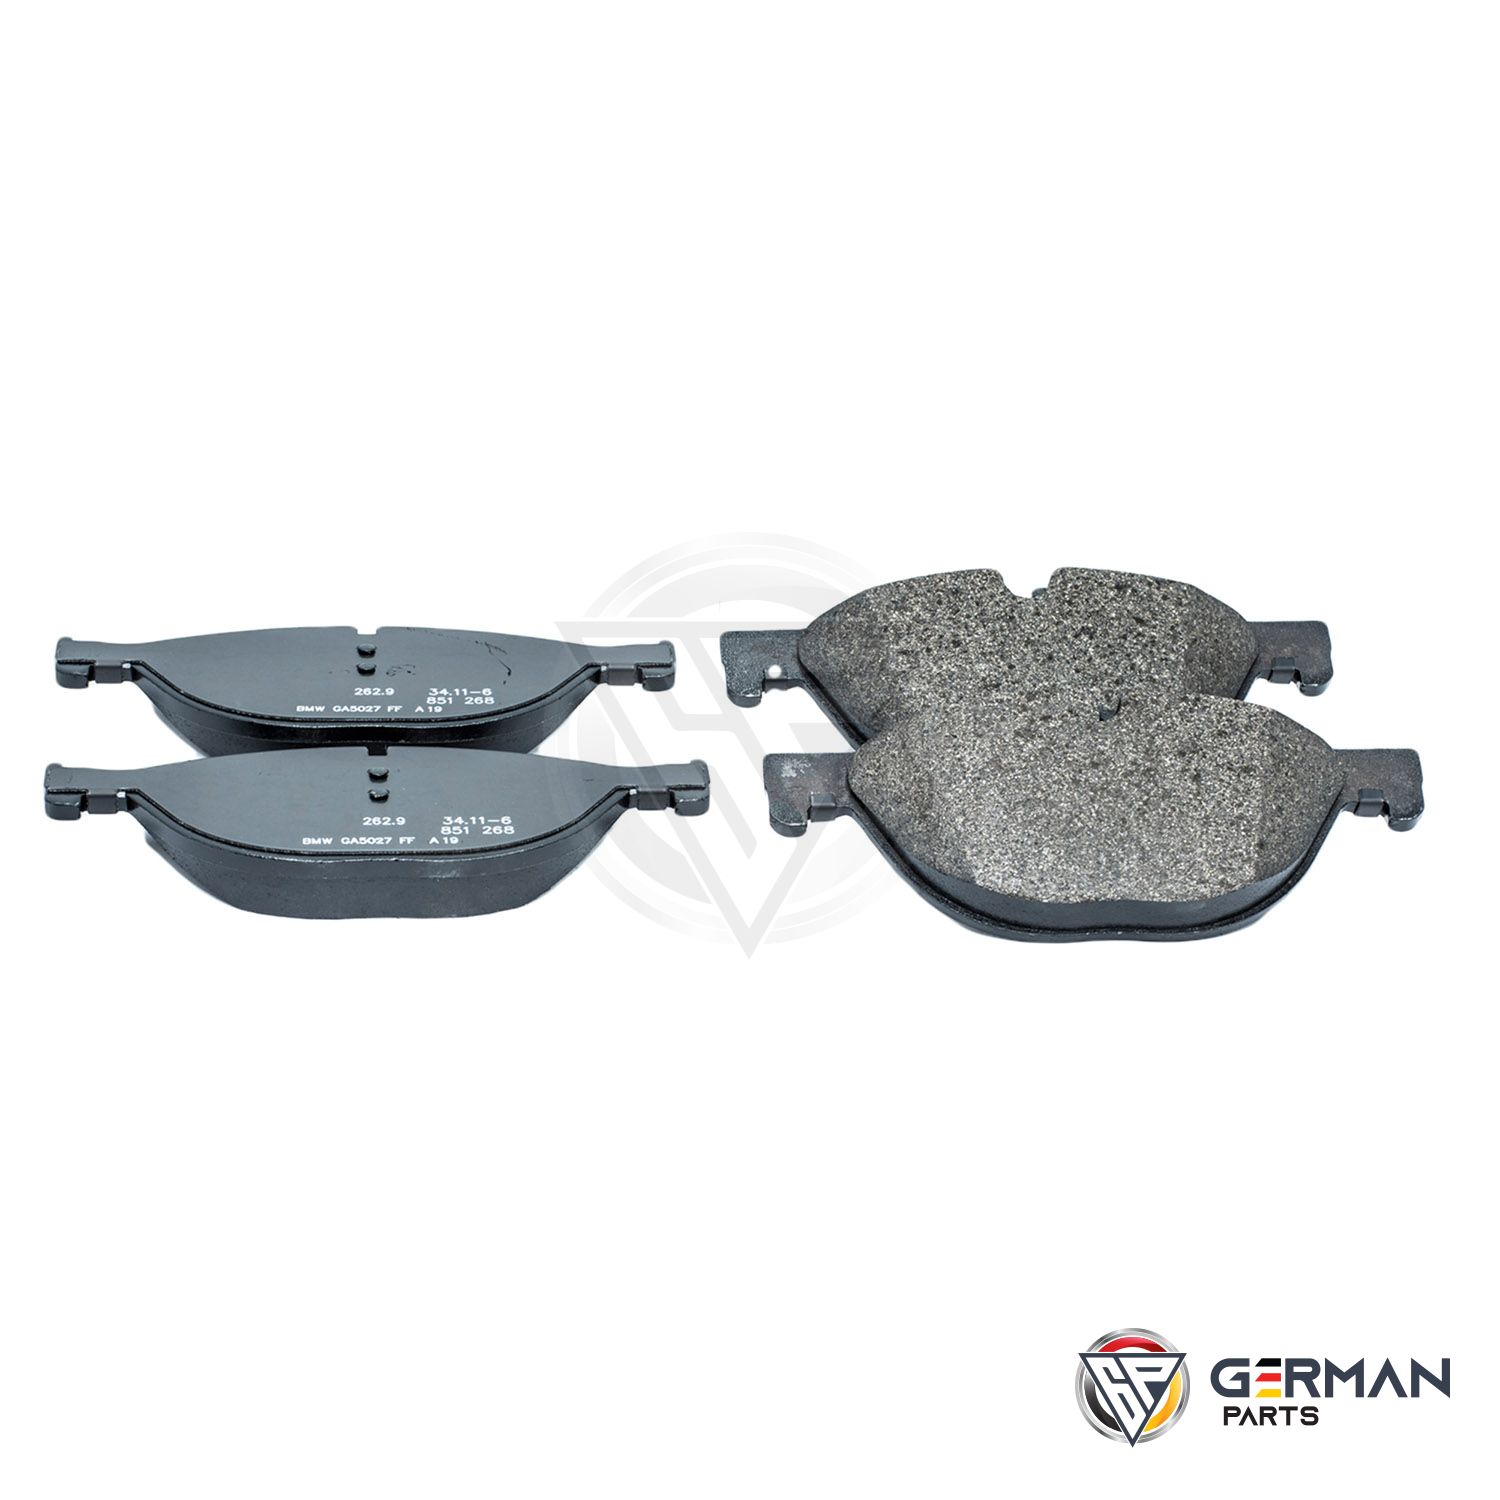 Buy Genuine BMW Front Brake Pad Set 34116851269 - German Parts